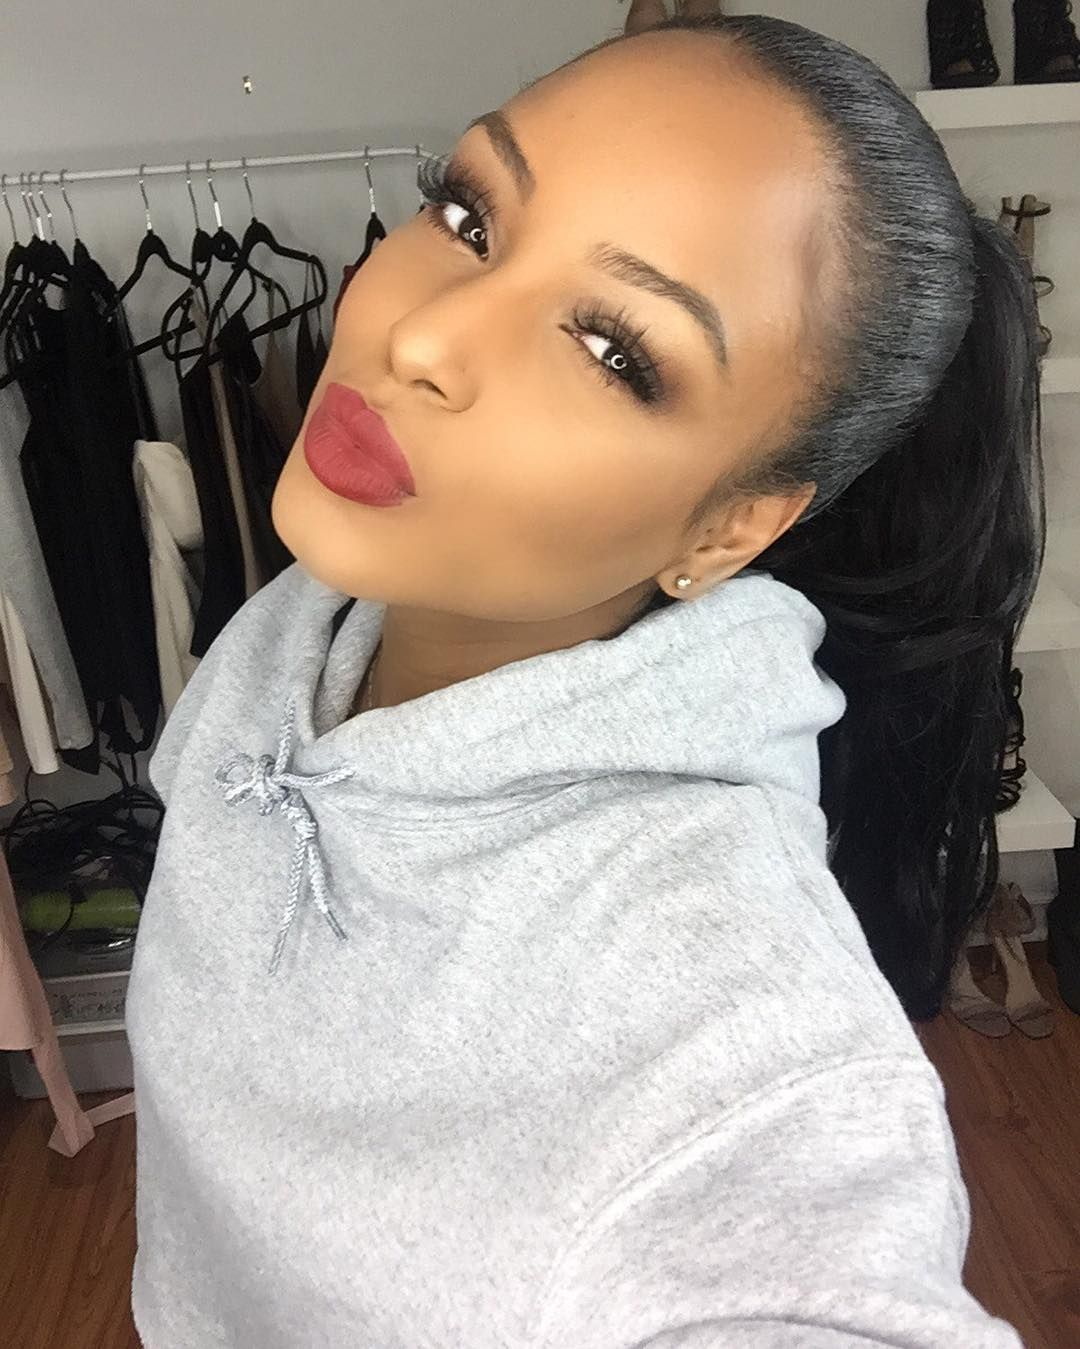 Latoya Forever Slays With A Solid Face Beat To Enhance Her